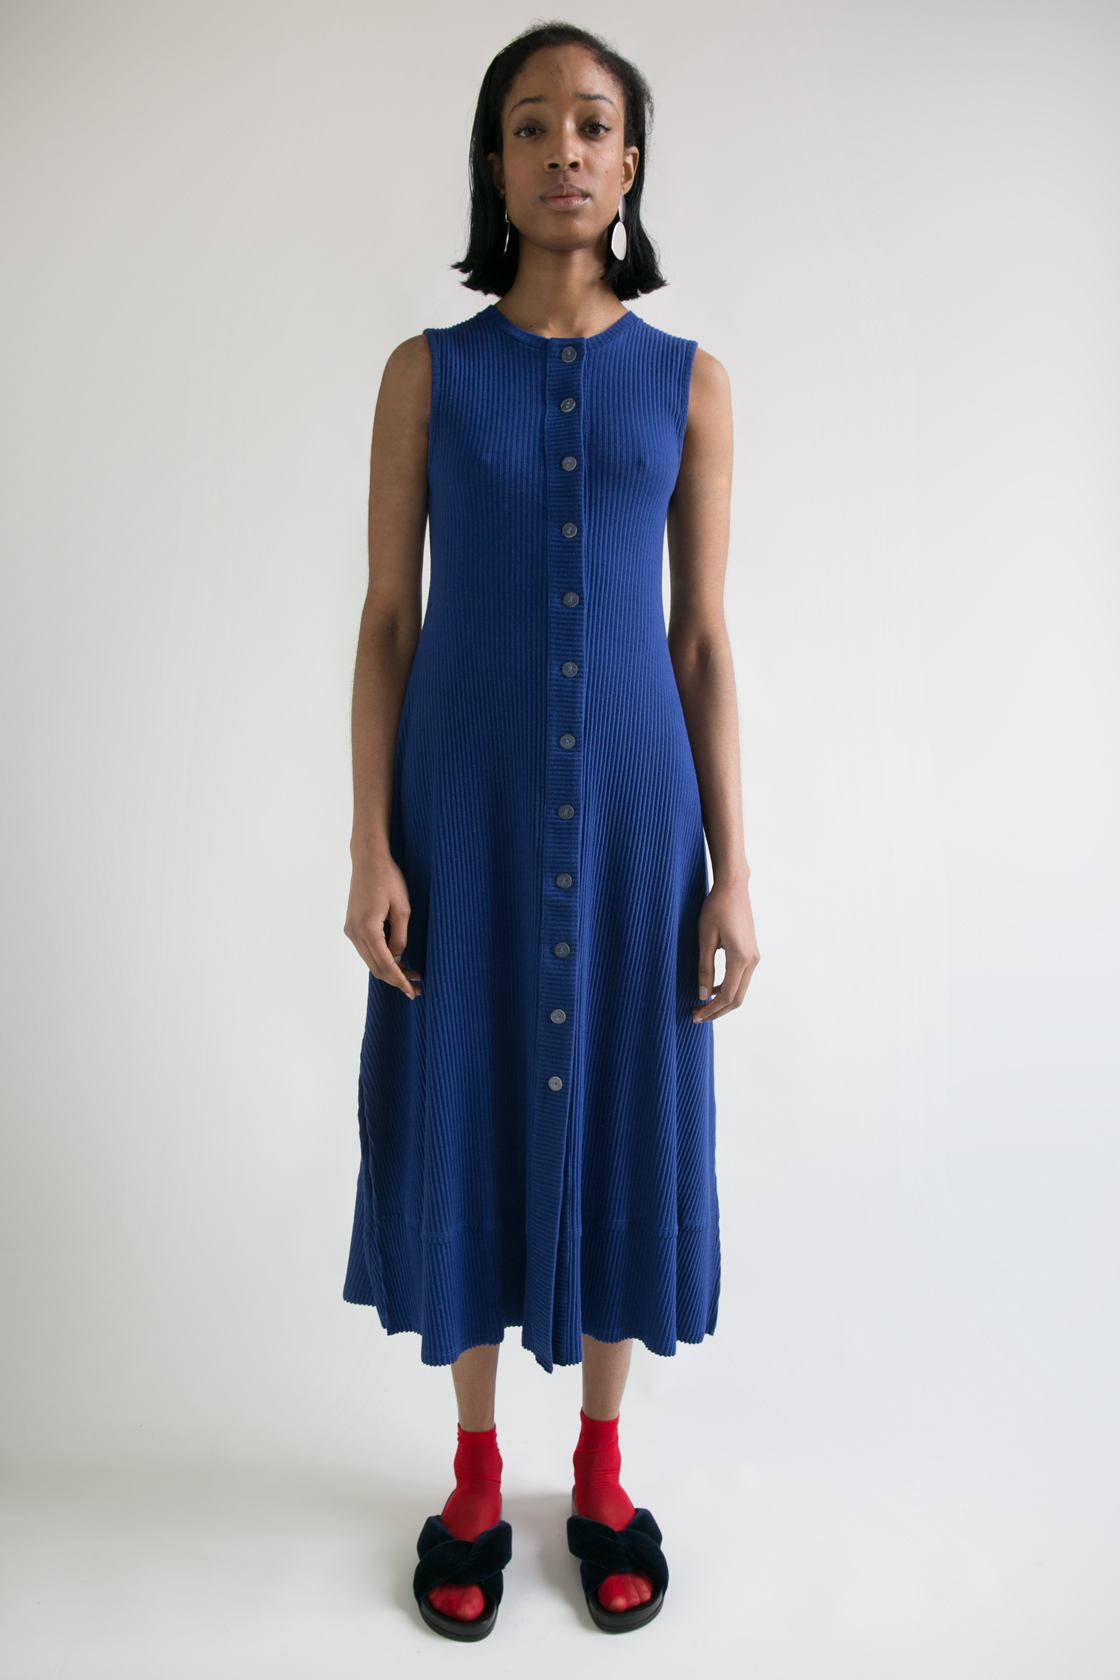 Basic Color Dress Cobalt  XS S M L  $288